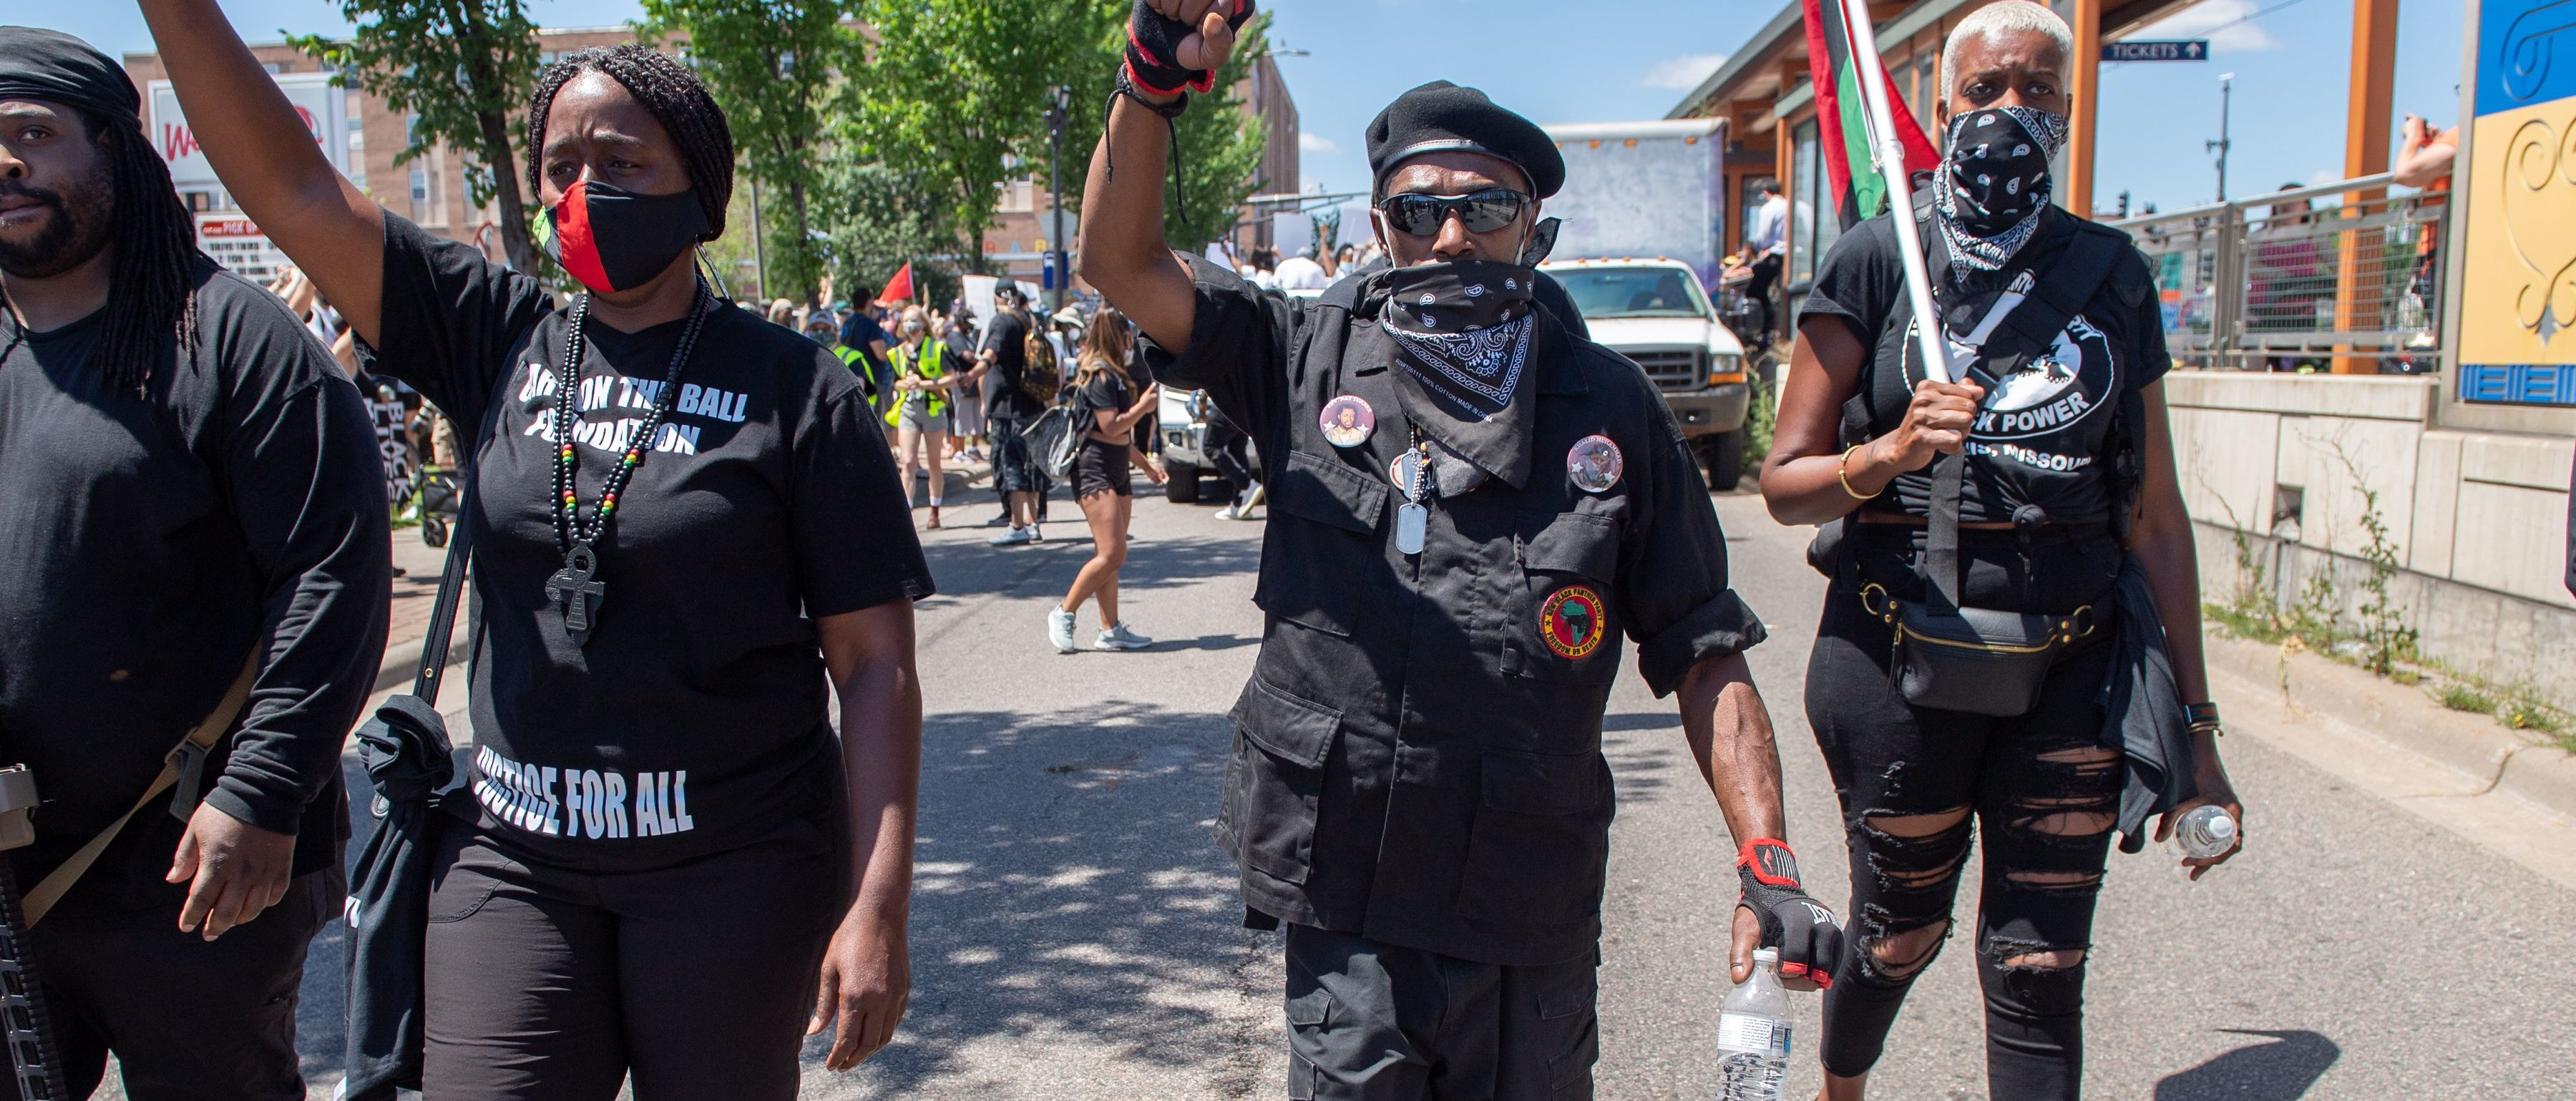 The Minneapolis group known as the Freedom Fighters march and protect supporters during a National Mother's March in St. Paul, Minnesota July 12, 2020. (Photo: Amanda Sabga/AFP via Getty Images)